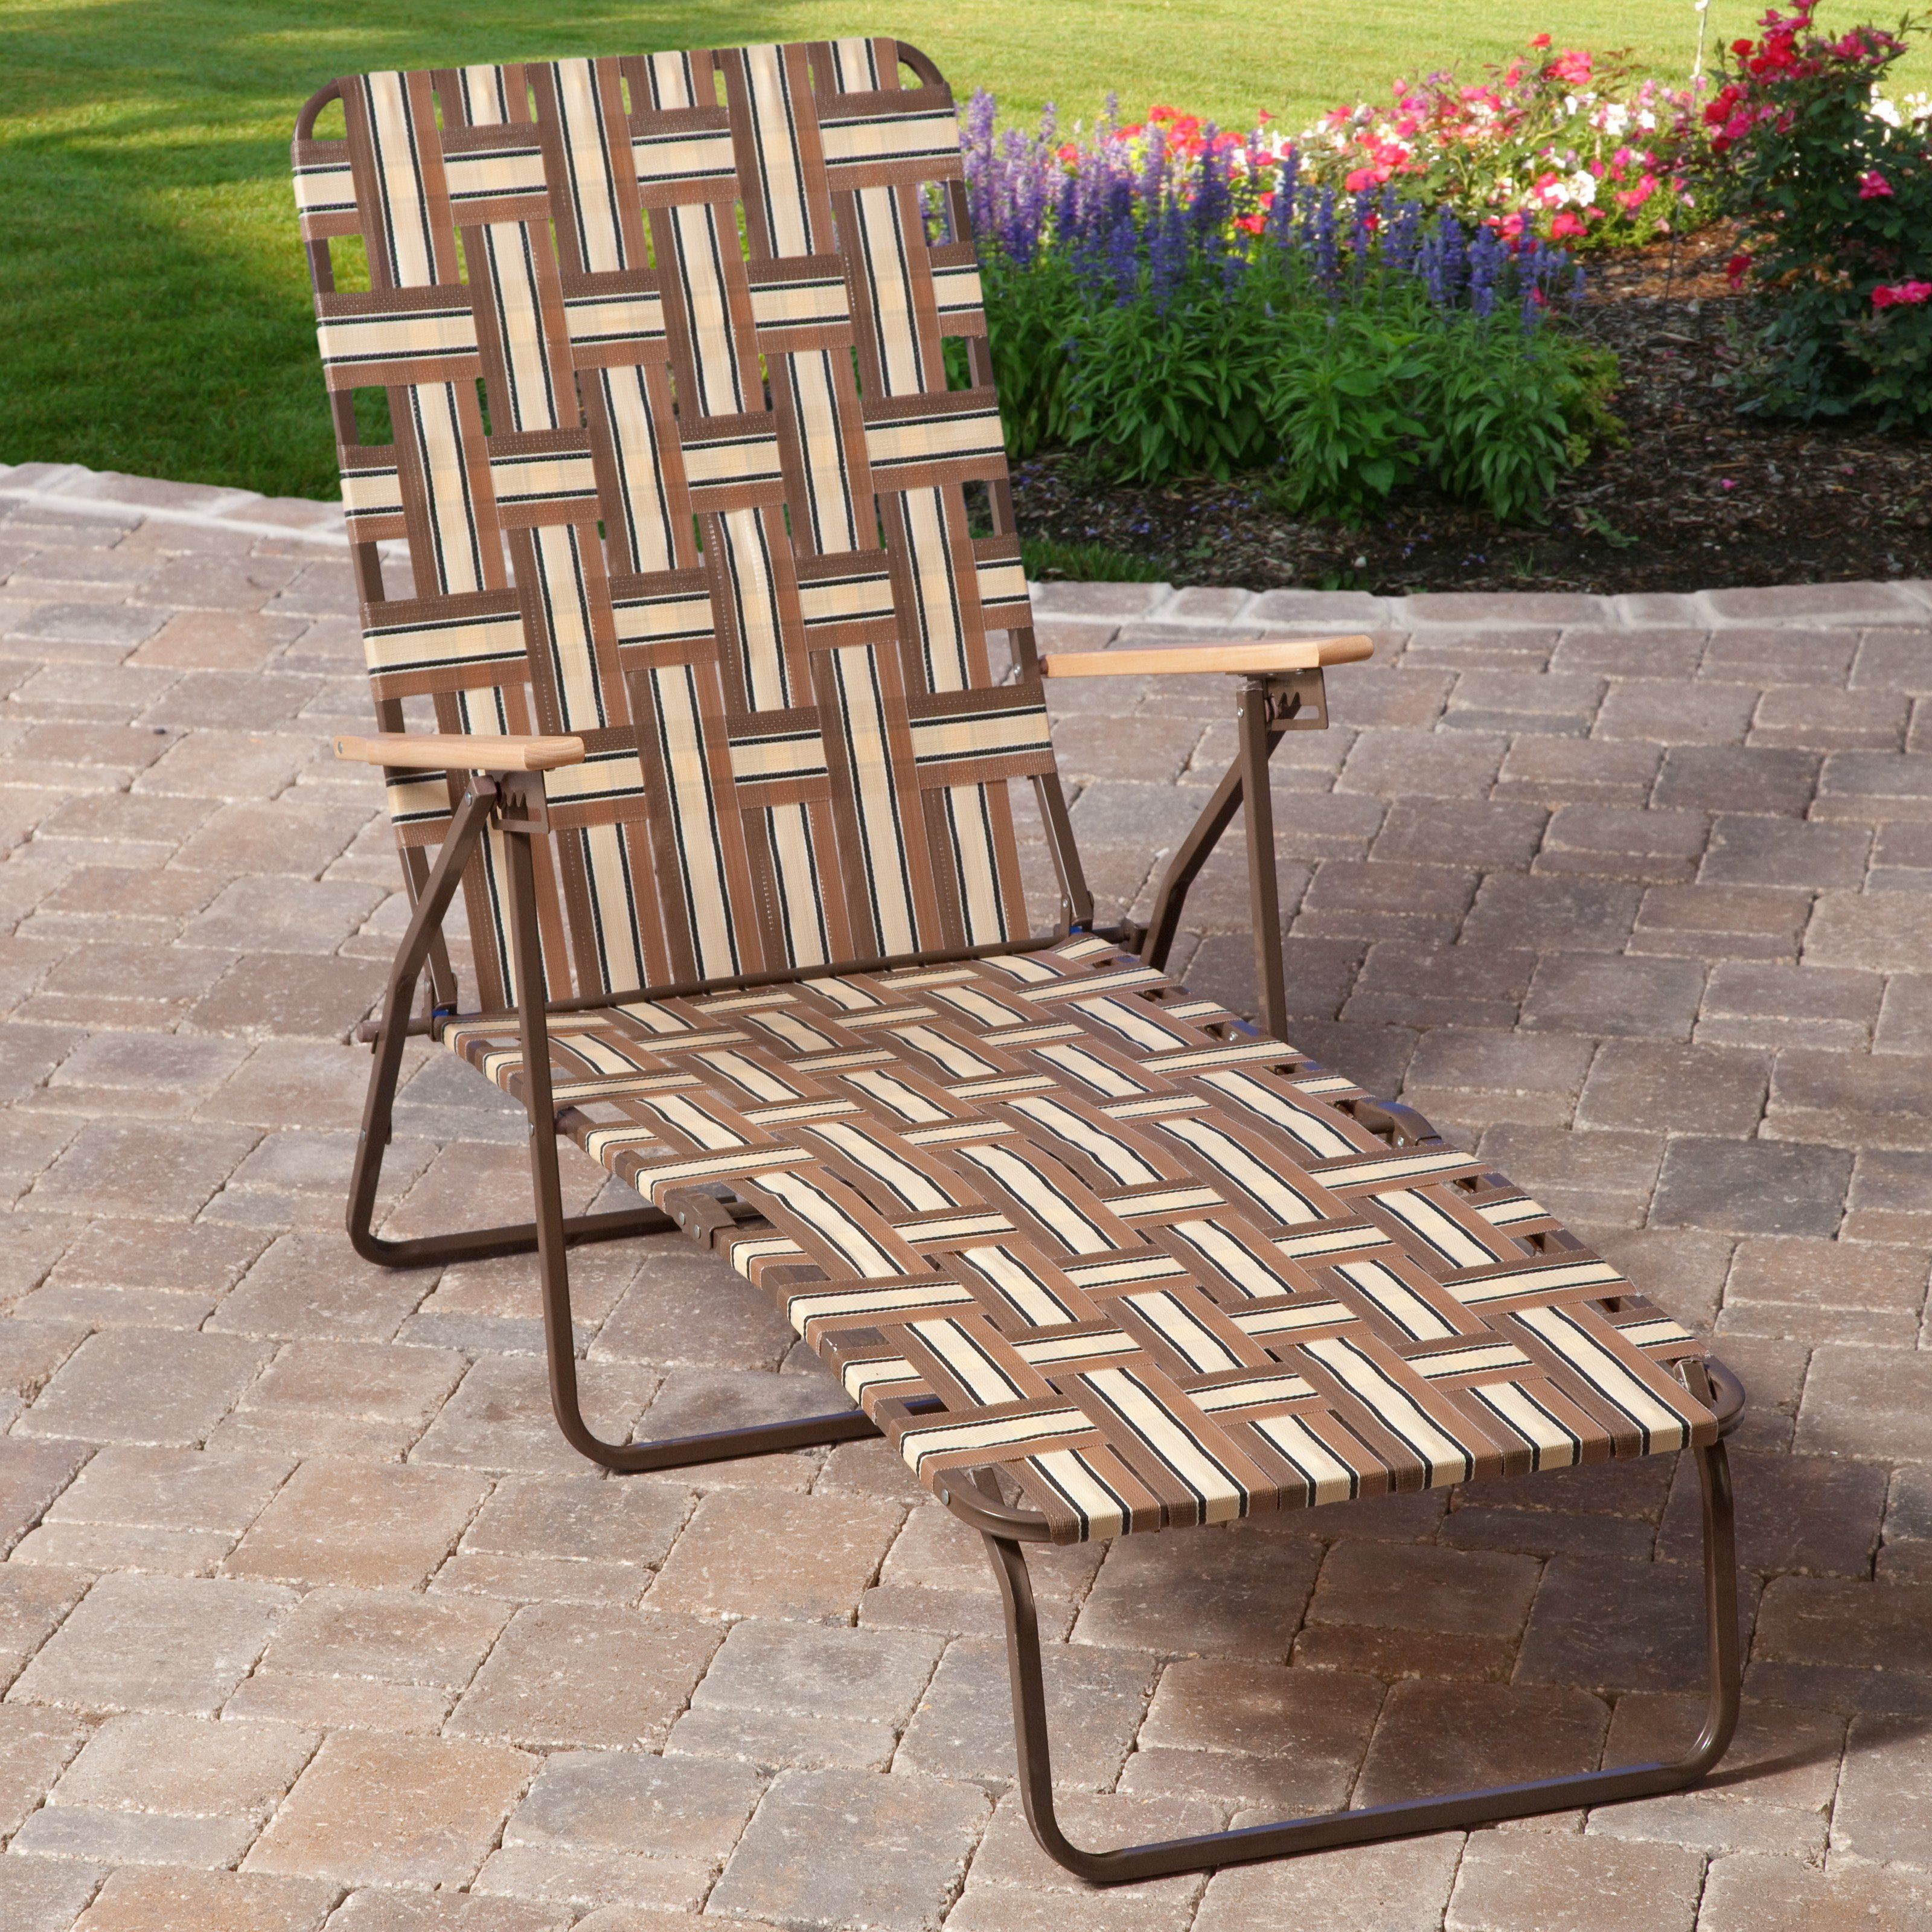 Rio Deluxe Folding Web Chaise Lounge Www Hayneedle Com Pool Lounge Chairs Folding Lounge Chair Patio Chairs